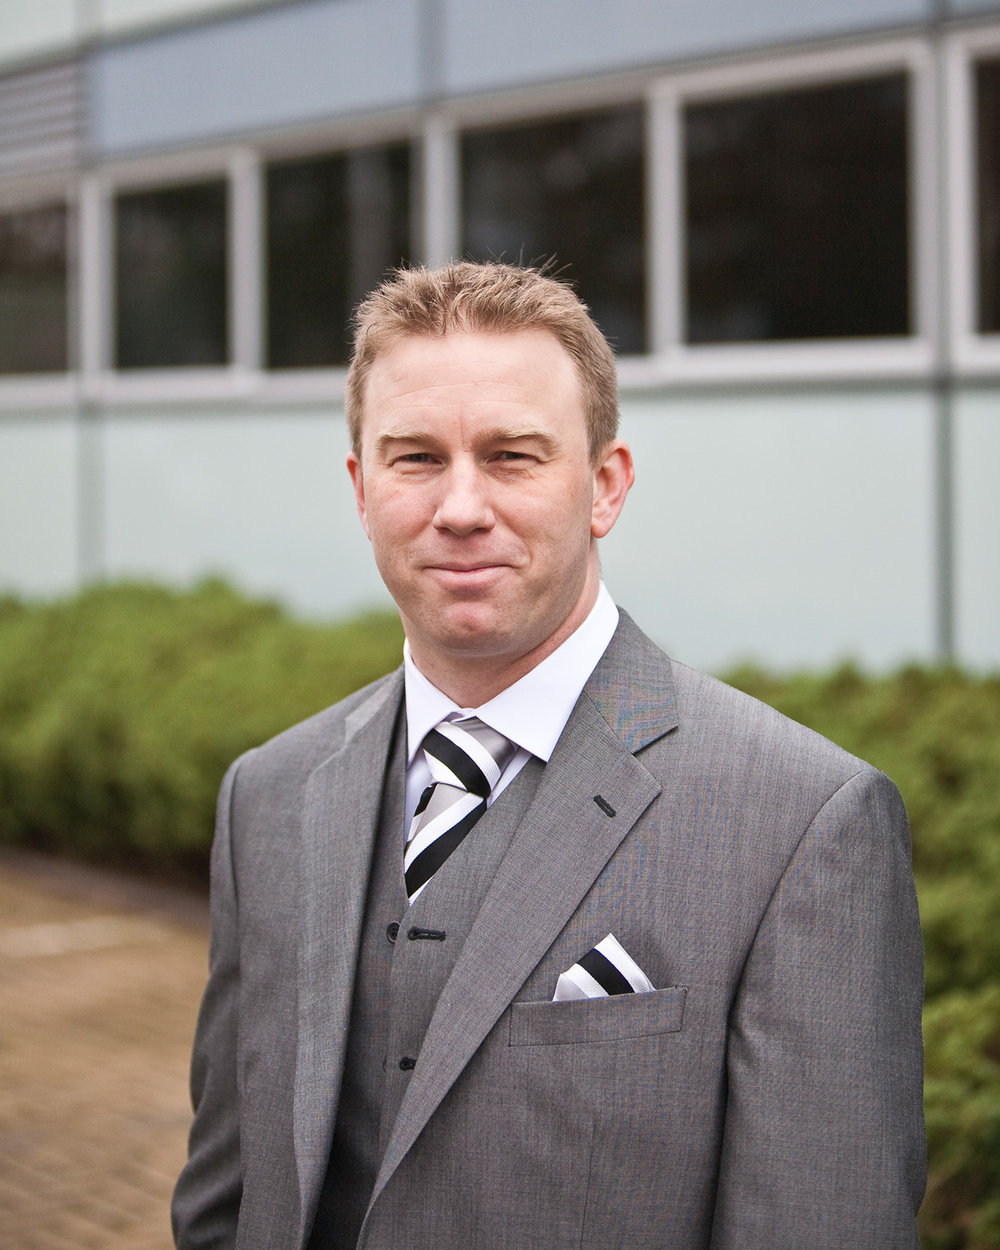 Commercial_Portrait_Photographer_Newbury_Berkshire_028.jpg